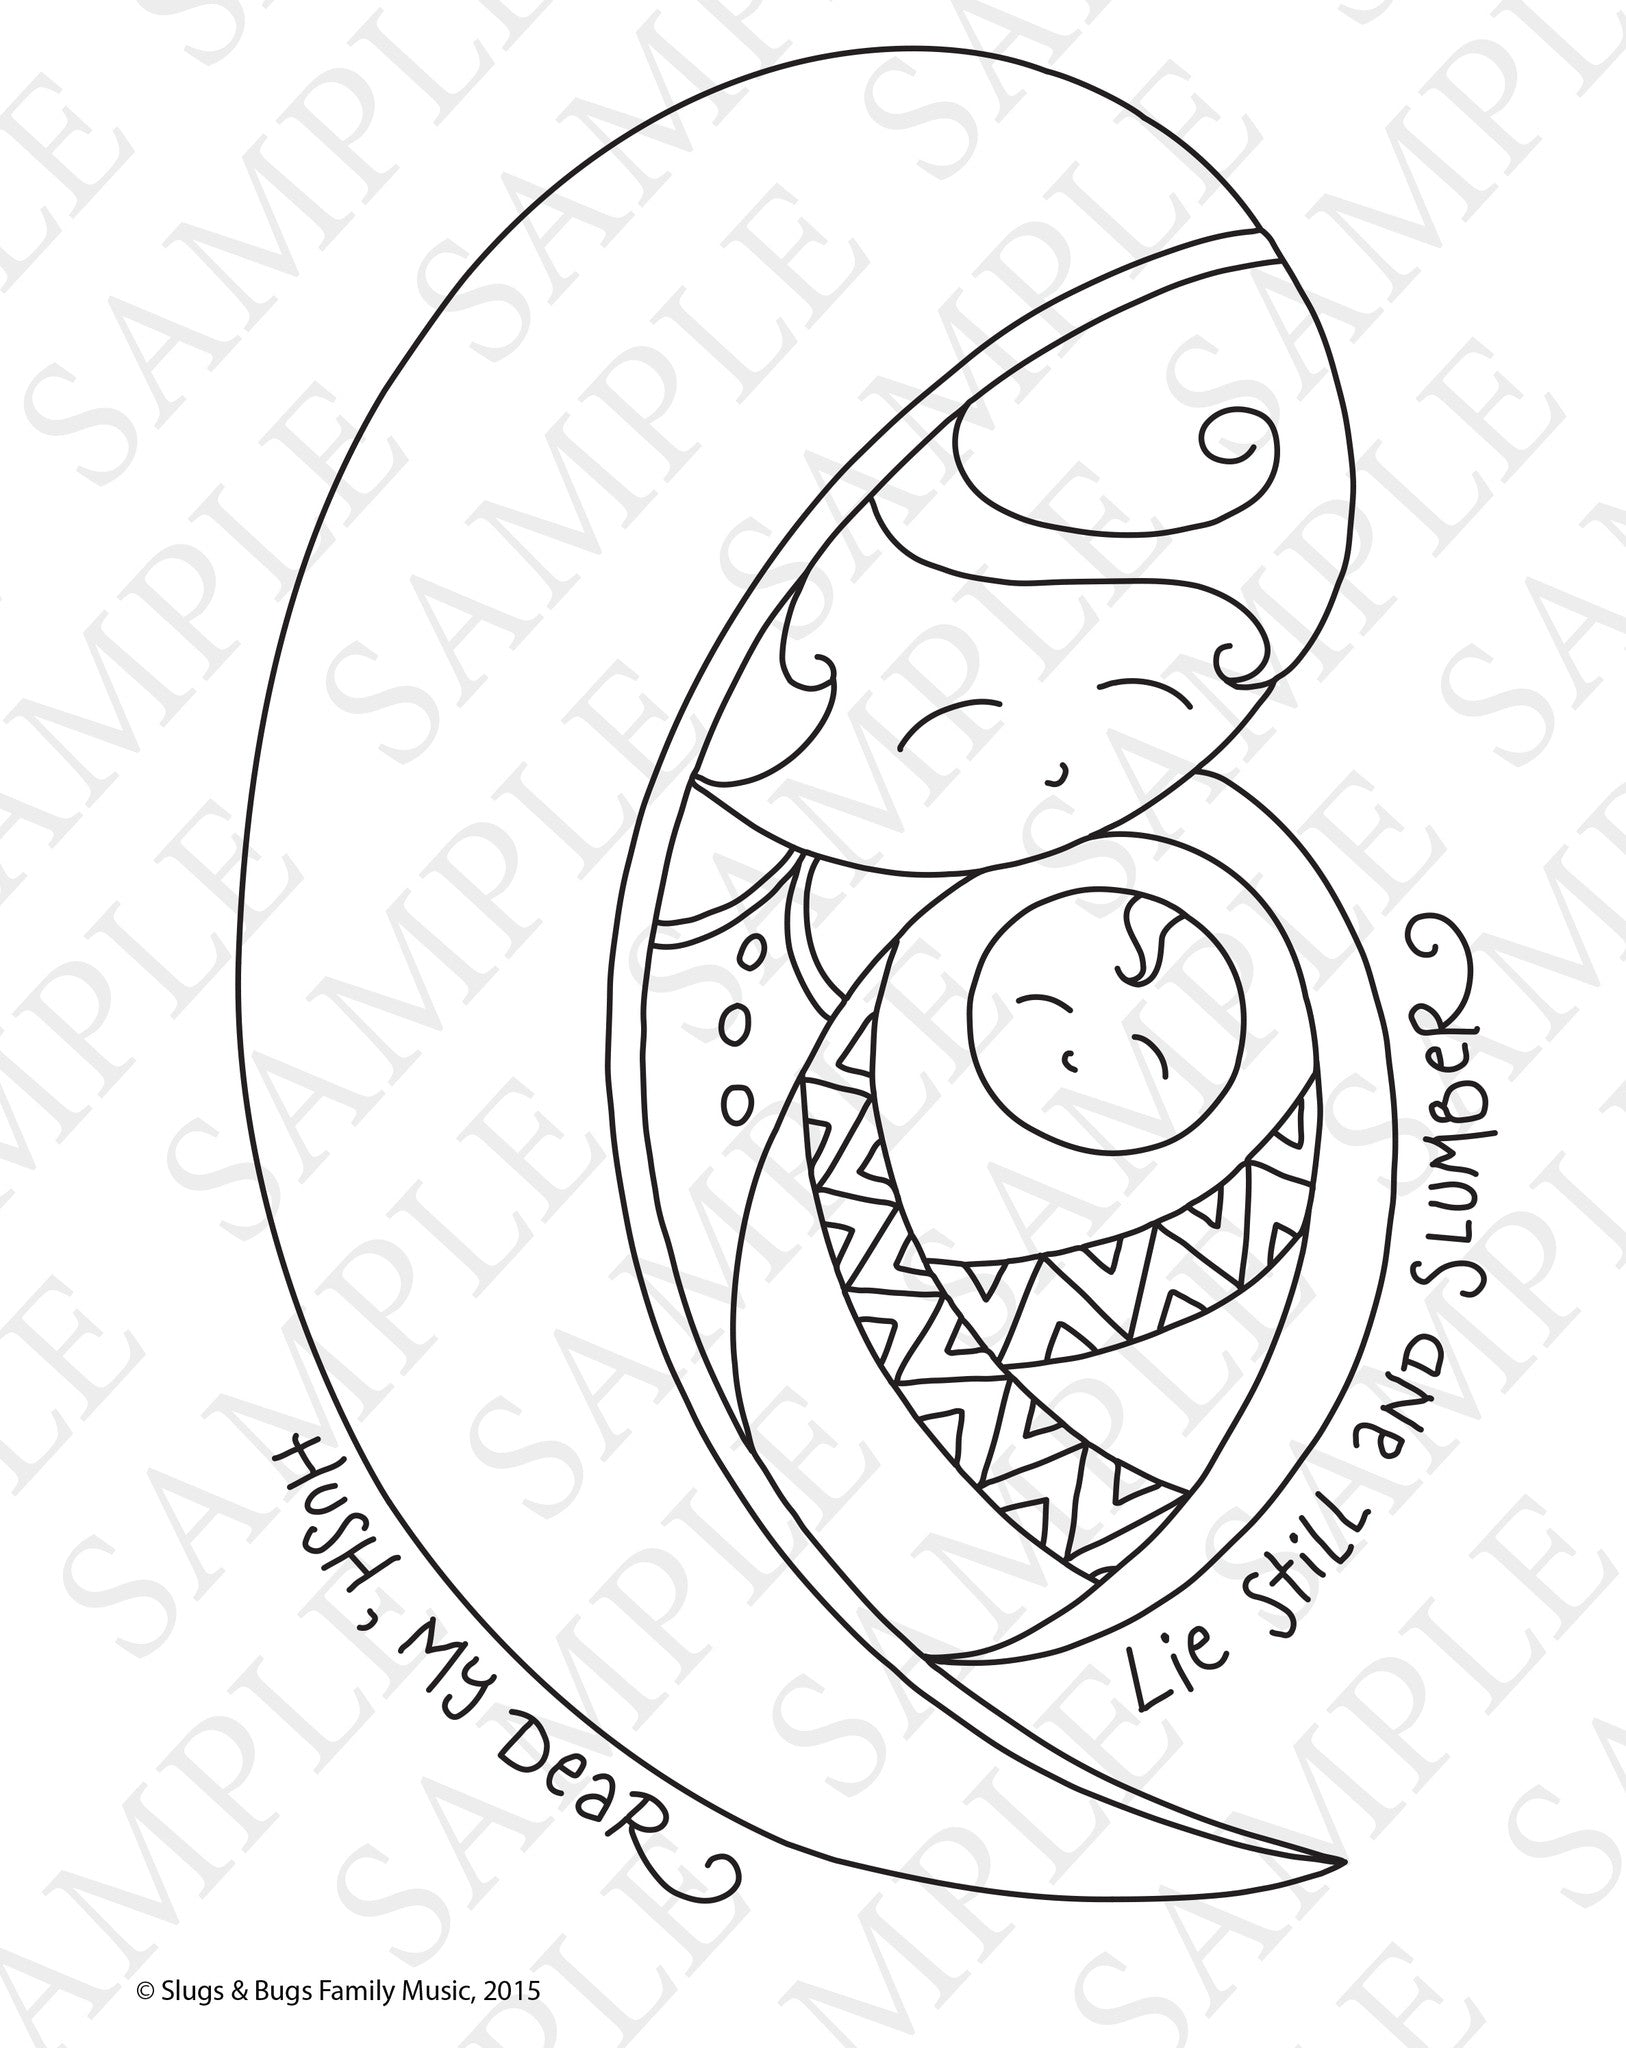 slugs u0026 bugs christmas coloring pages u2013 the rabbit room store